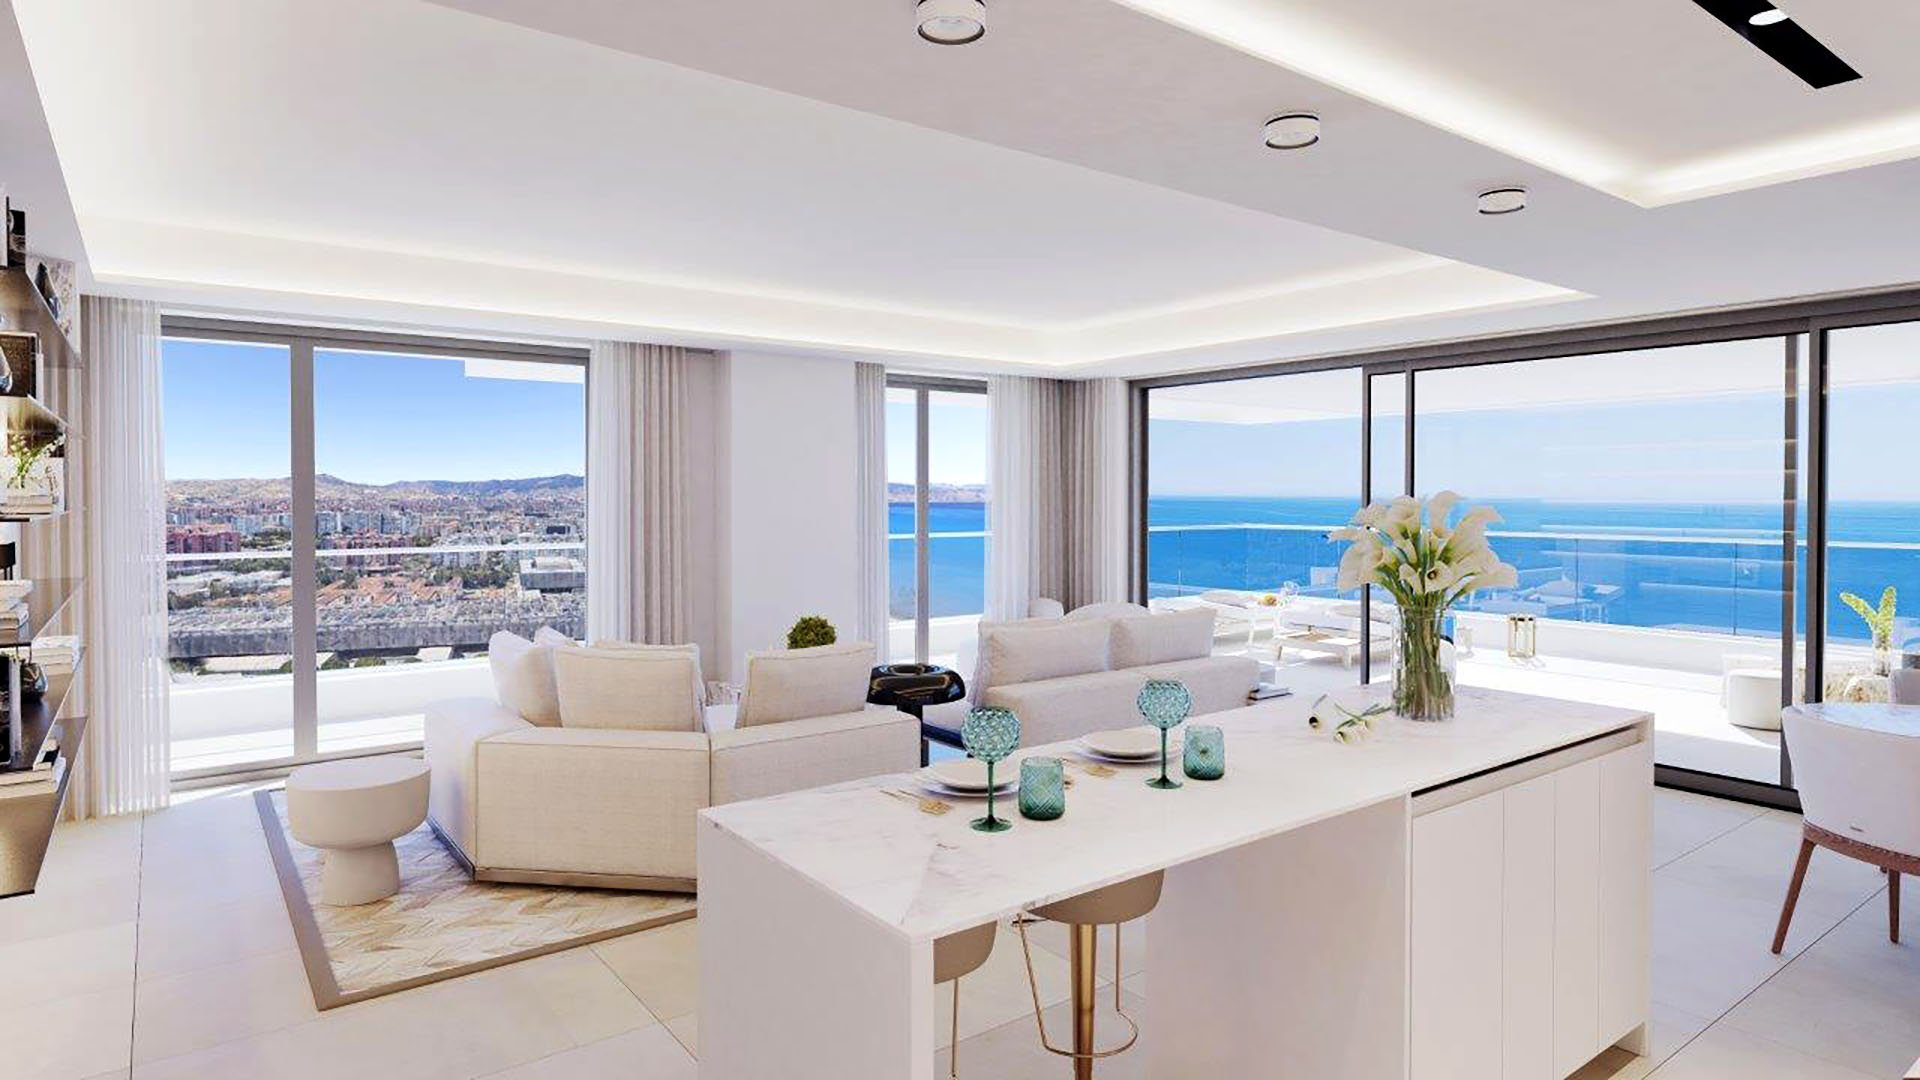 Málaga Towers: Exclusive front line beach apartments in Málaga